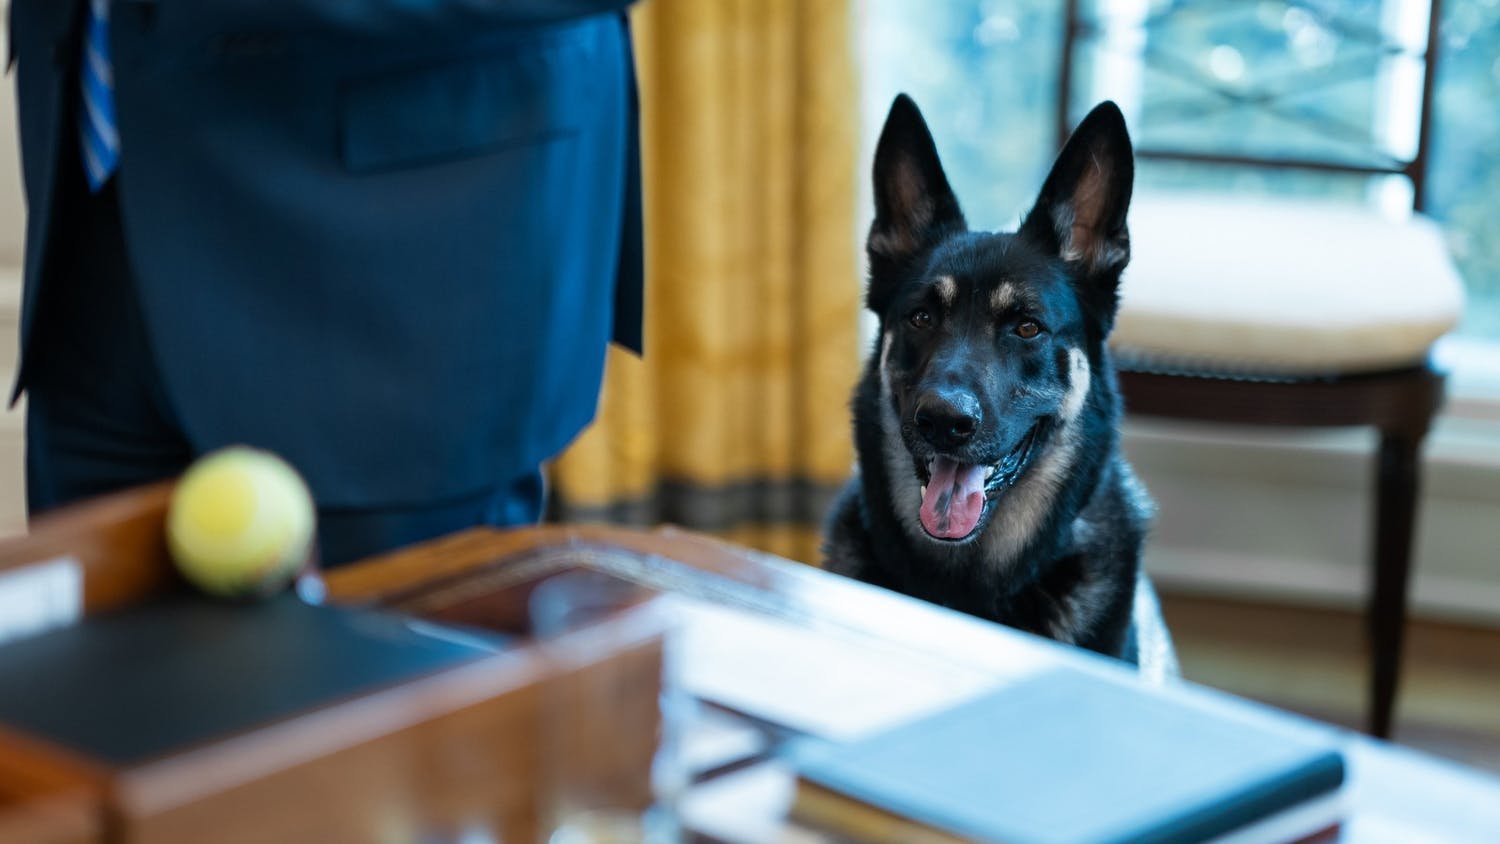 Photo of President Biden's dog, Major.